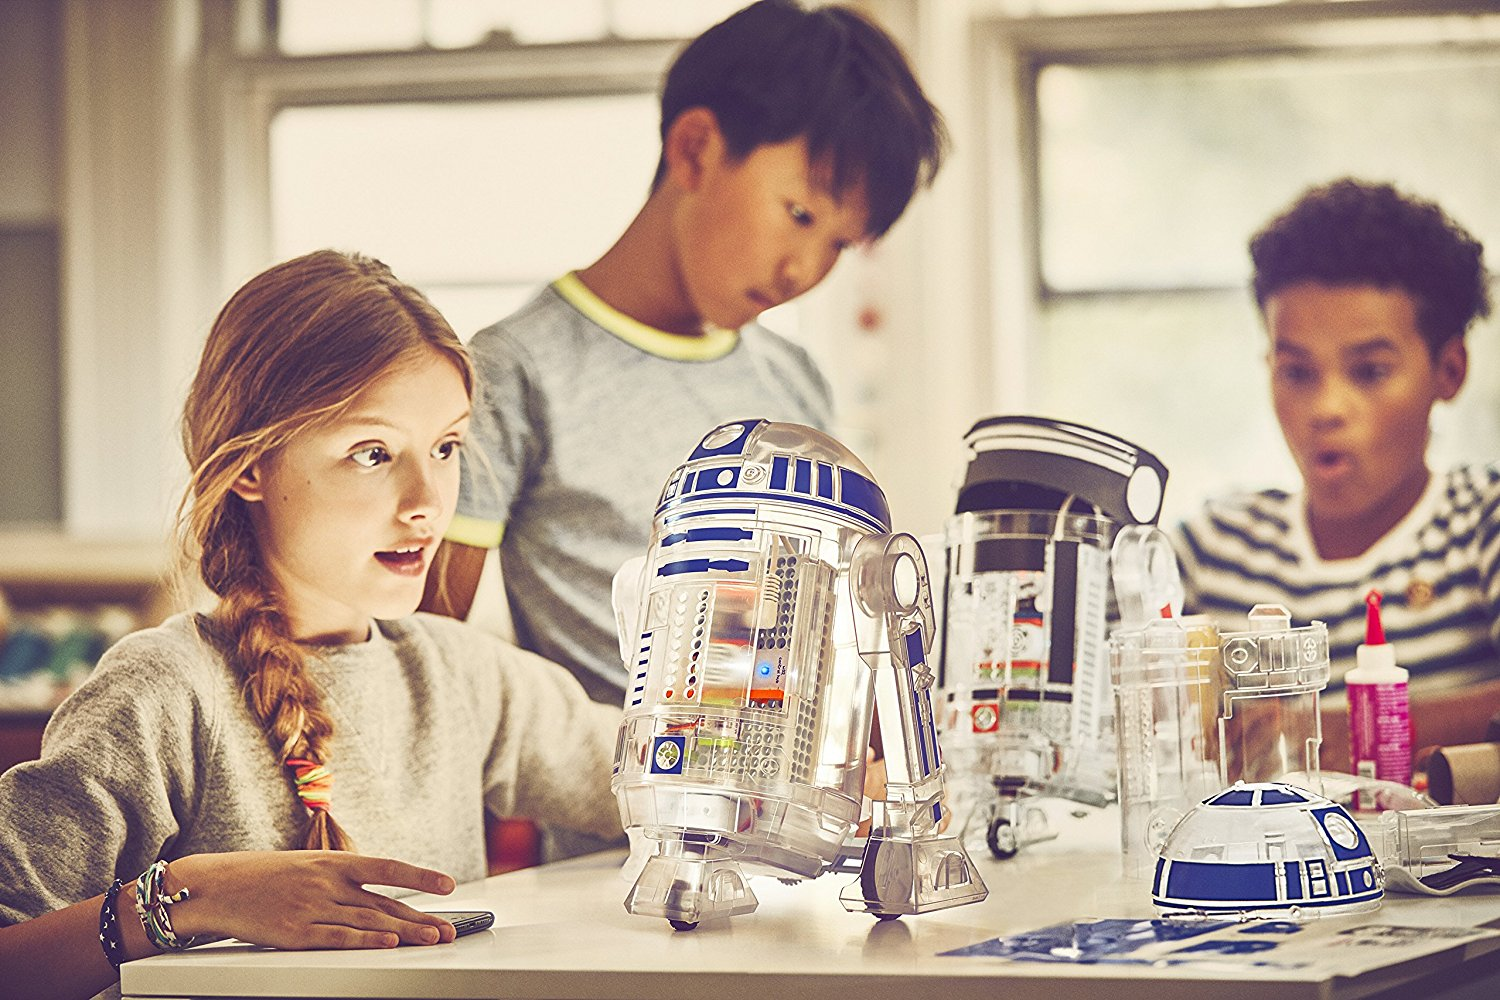 Star Wars R2D2 Droid Inventor Kit by littleBits